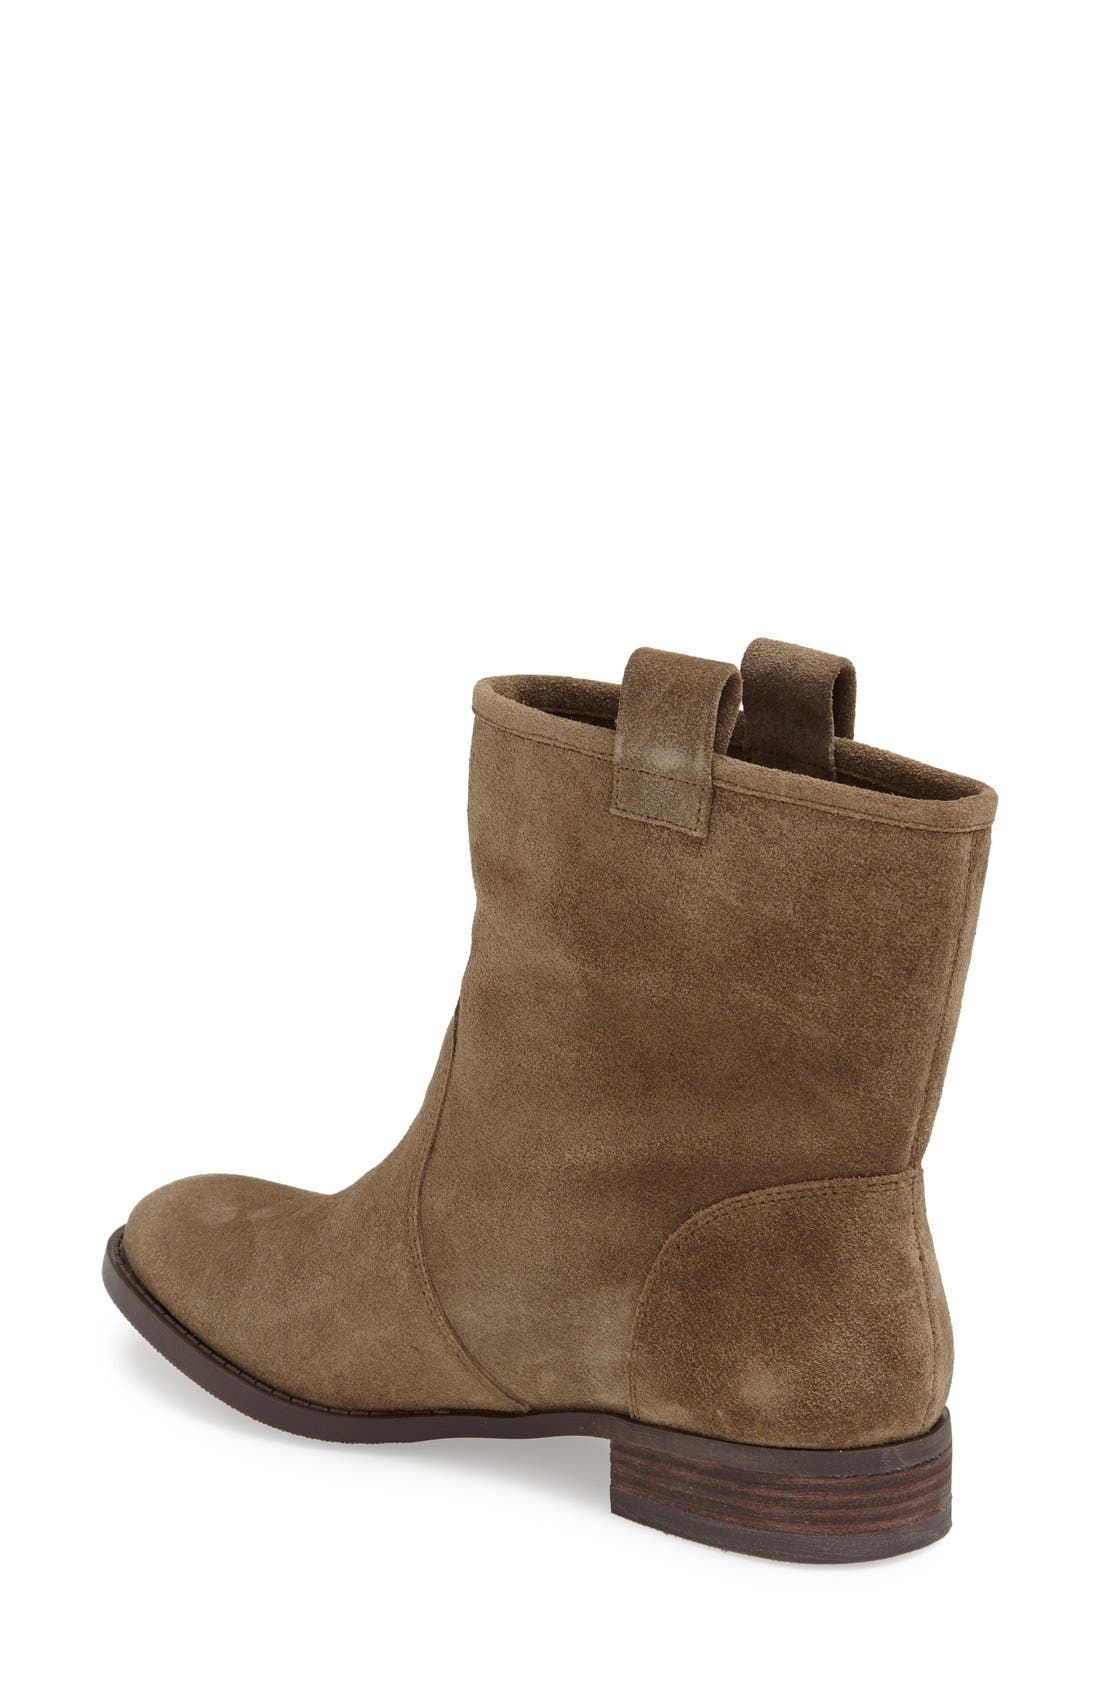 'Natasha' Boot,                             Alternate thumbnail 2, color,                             Army Suede